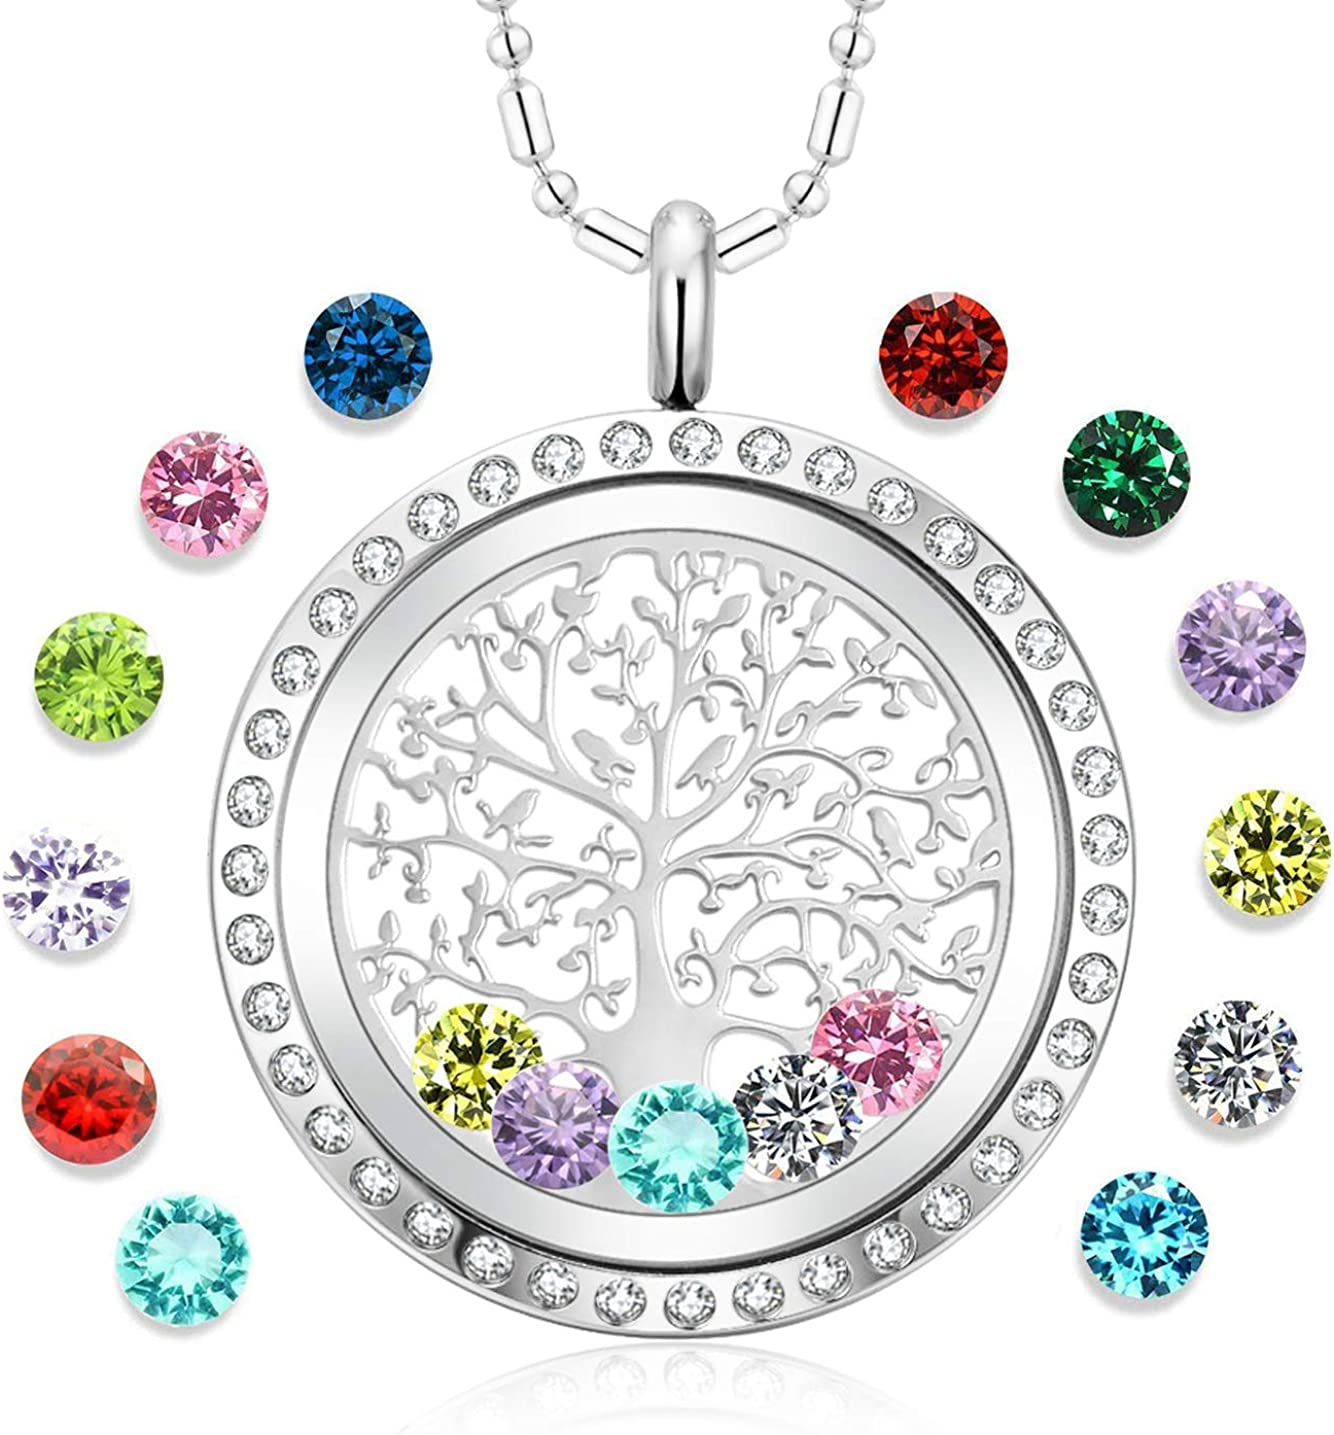 AZNECK Tree of Life Floating Charm Living Memory Lockets Pendant Necklace Stainless Steel Toughened Glass Gifts for Mom Family